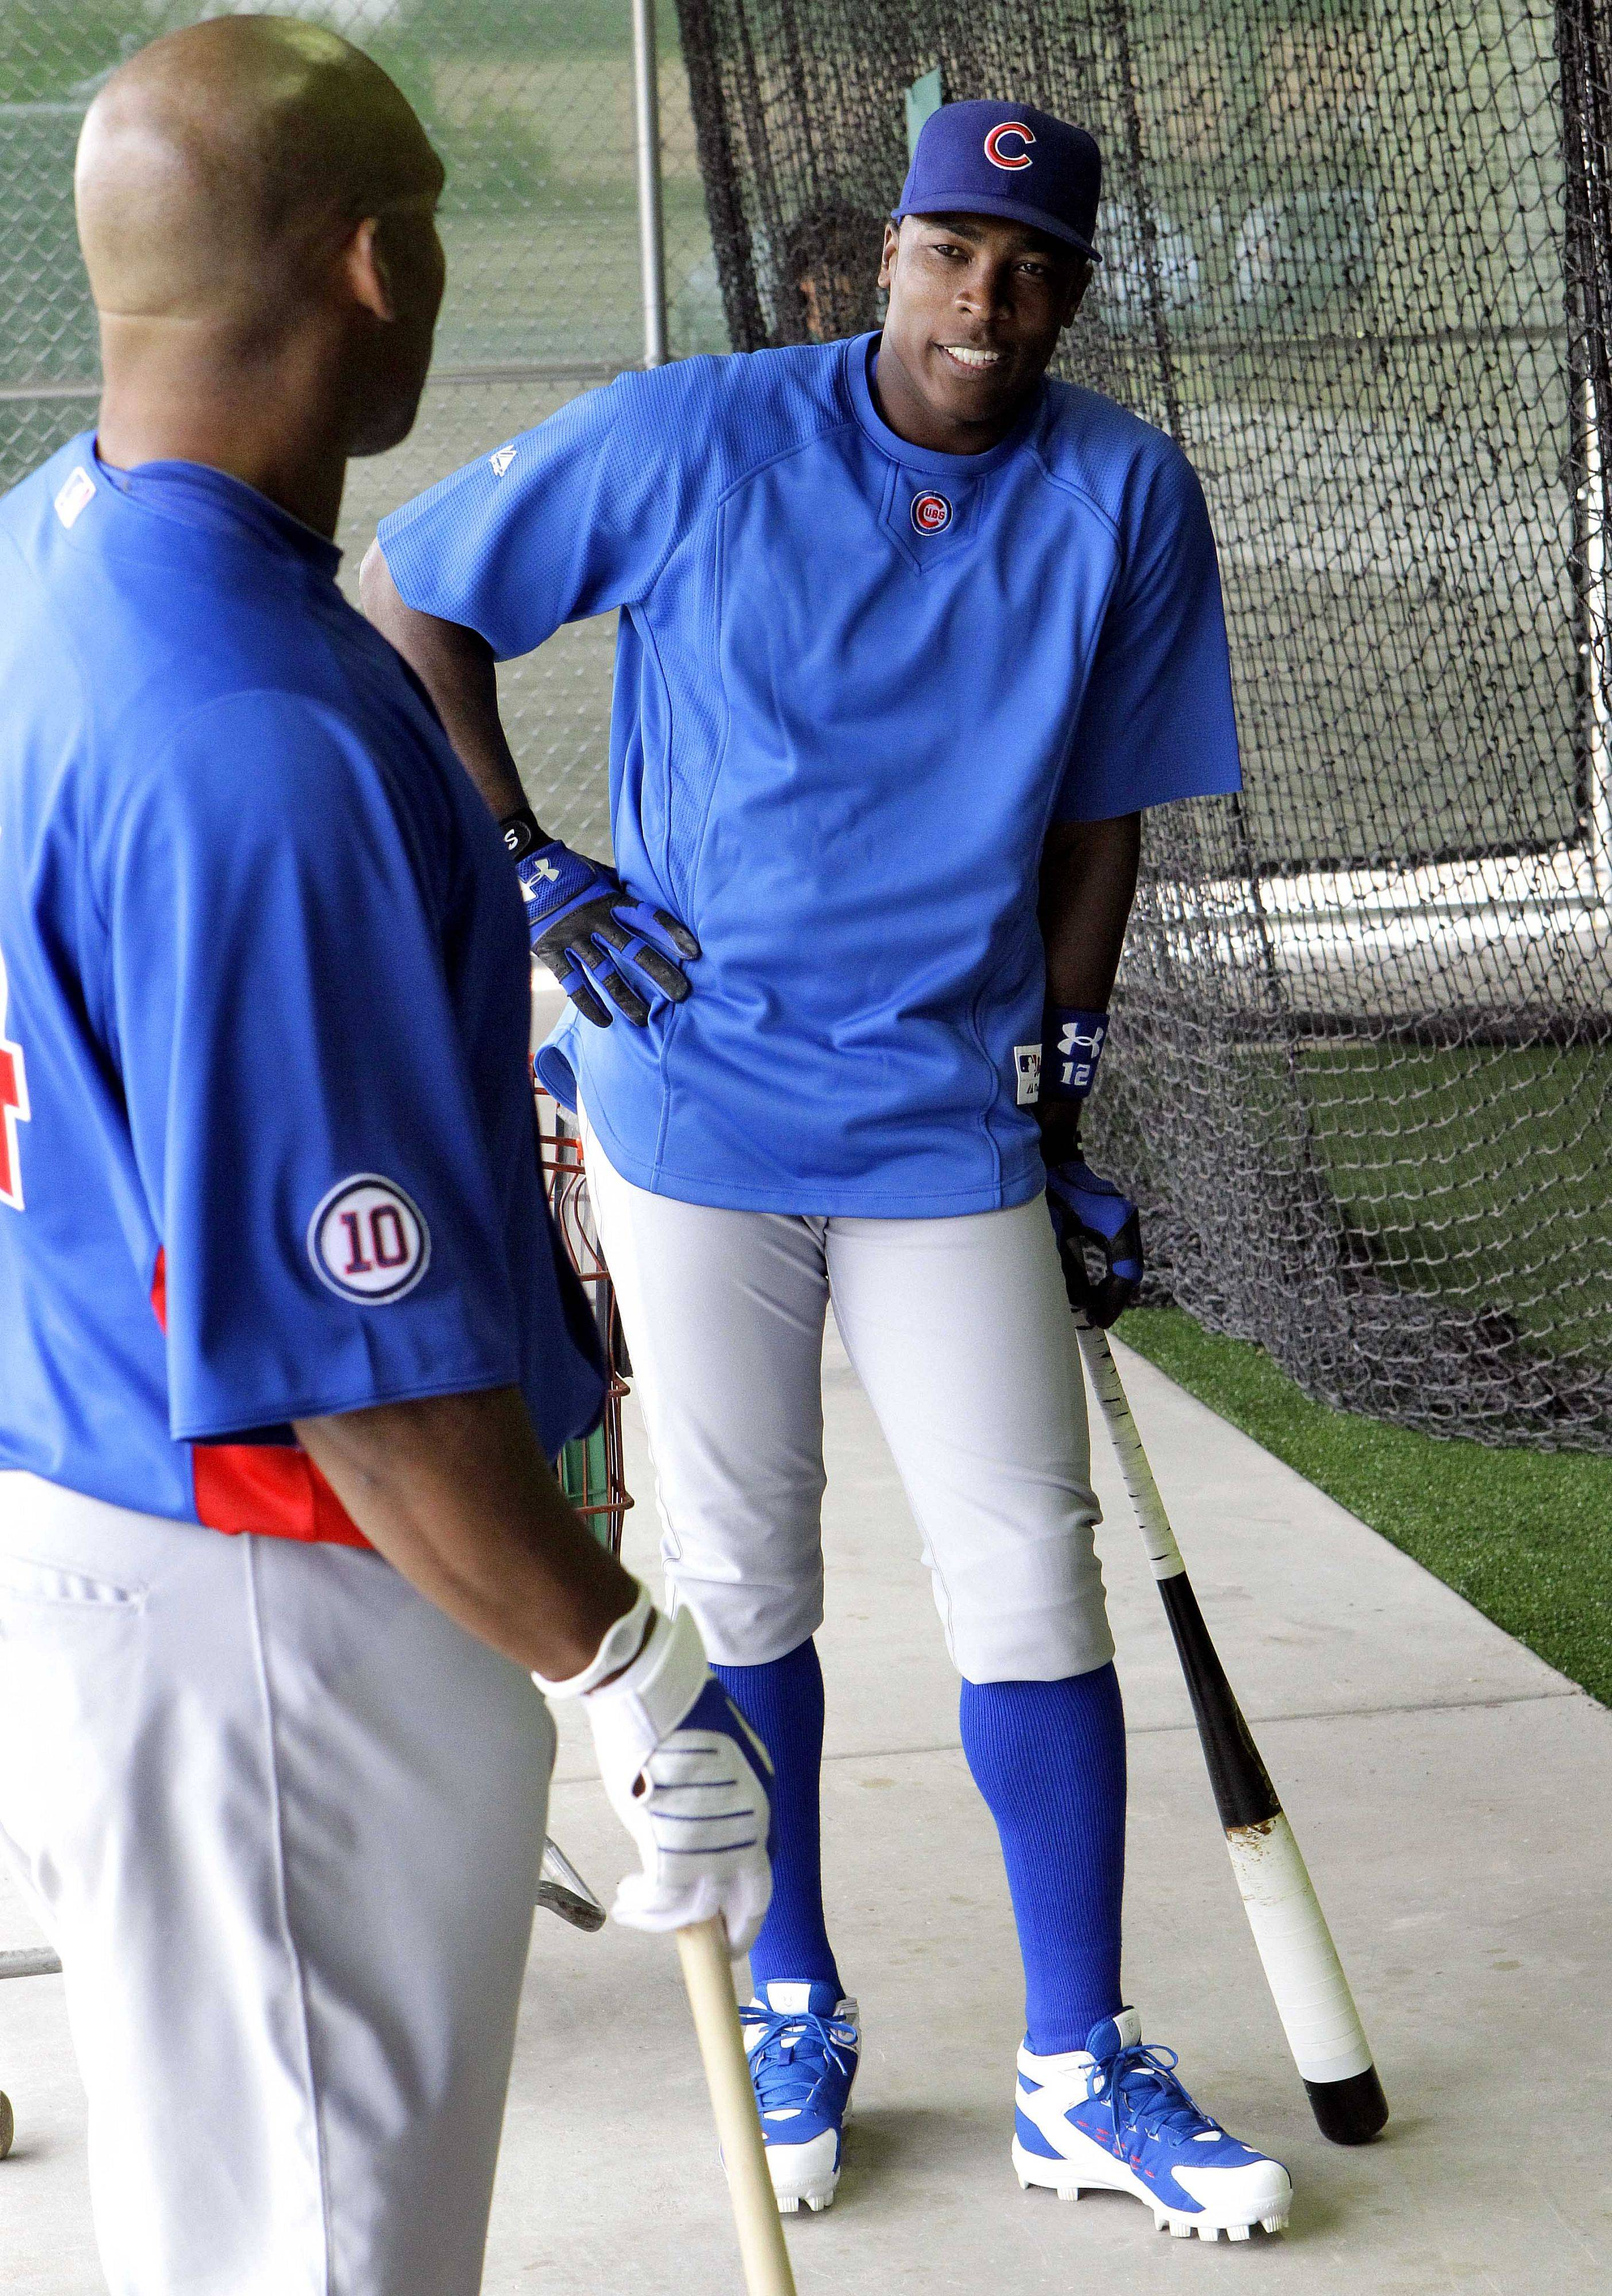 Cubs outfielders Alfonso Soriano, right, and Marlon Byrd wait for batting practice to begin at the Cubs' baseball spring training facility in Mesa, Ariz.